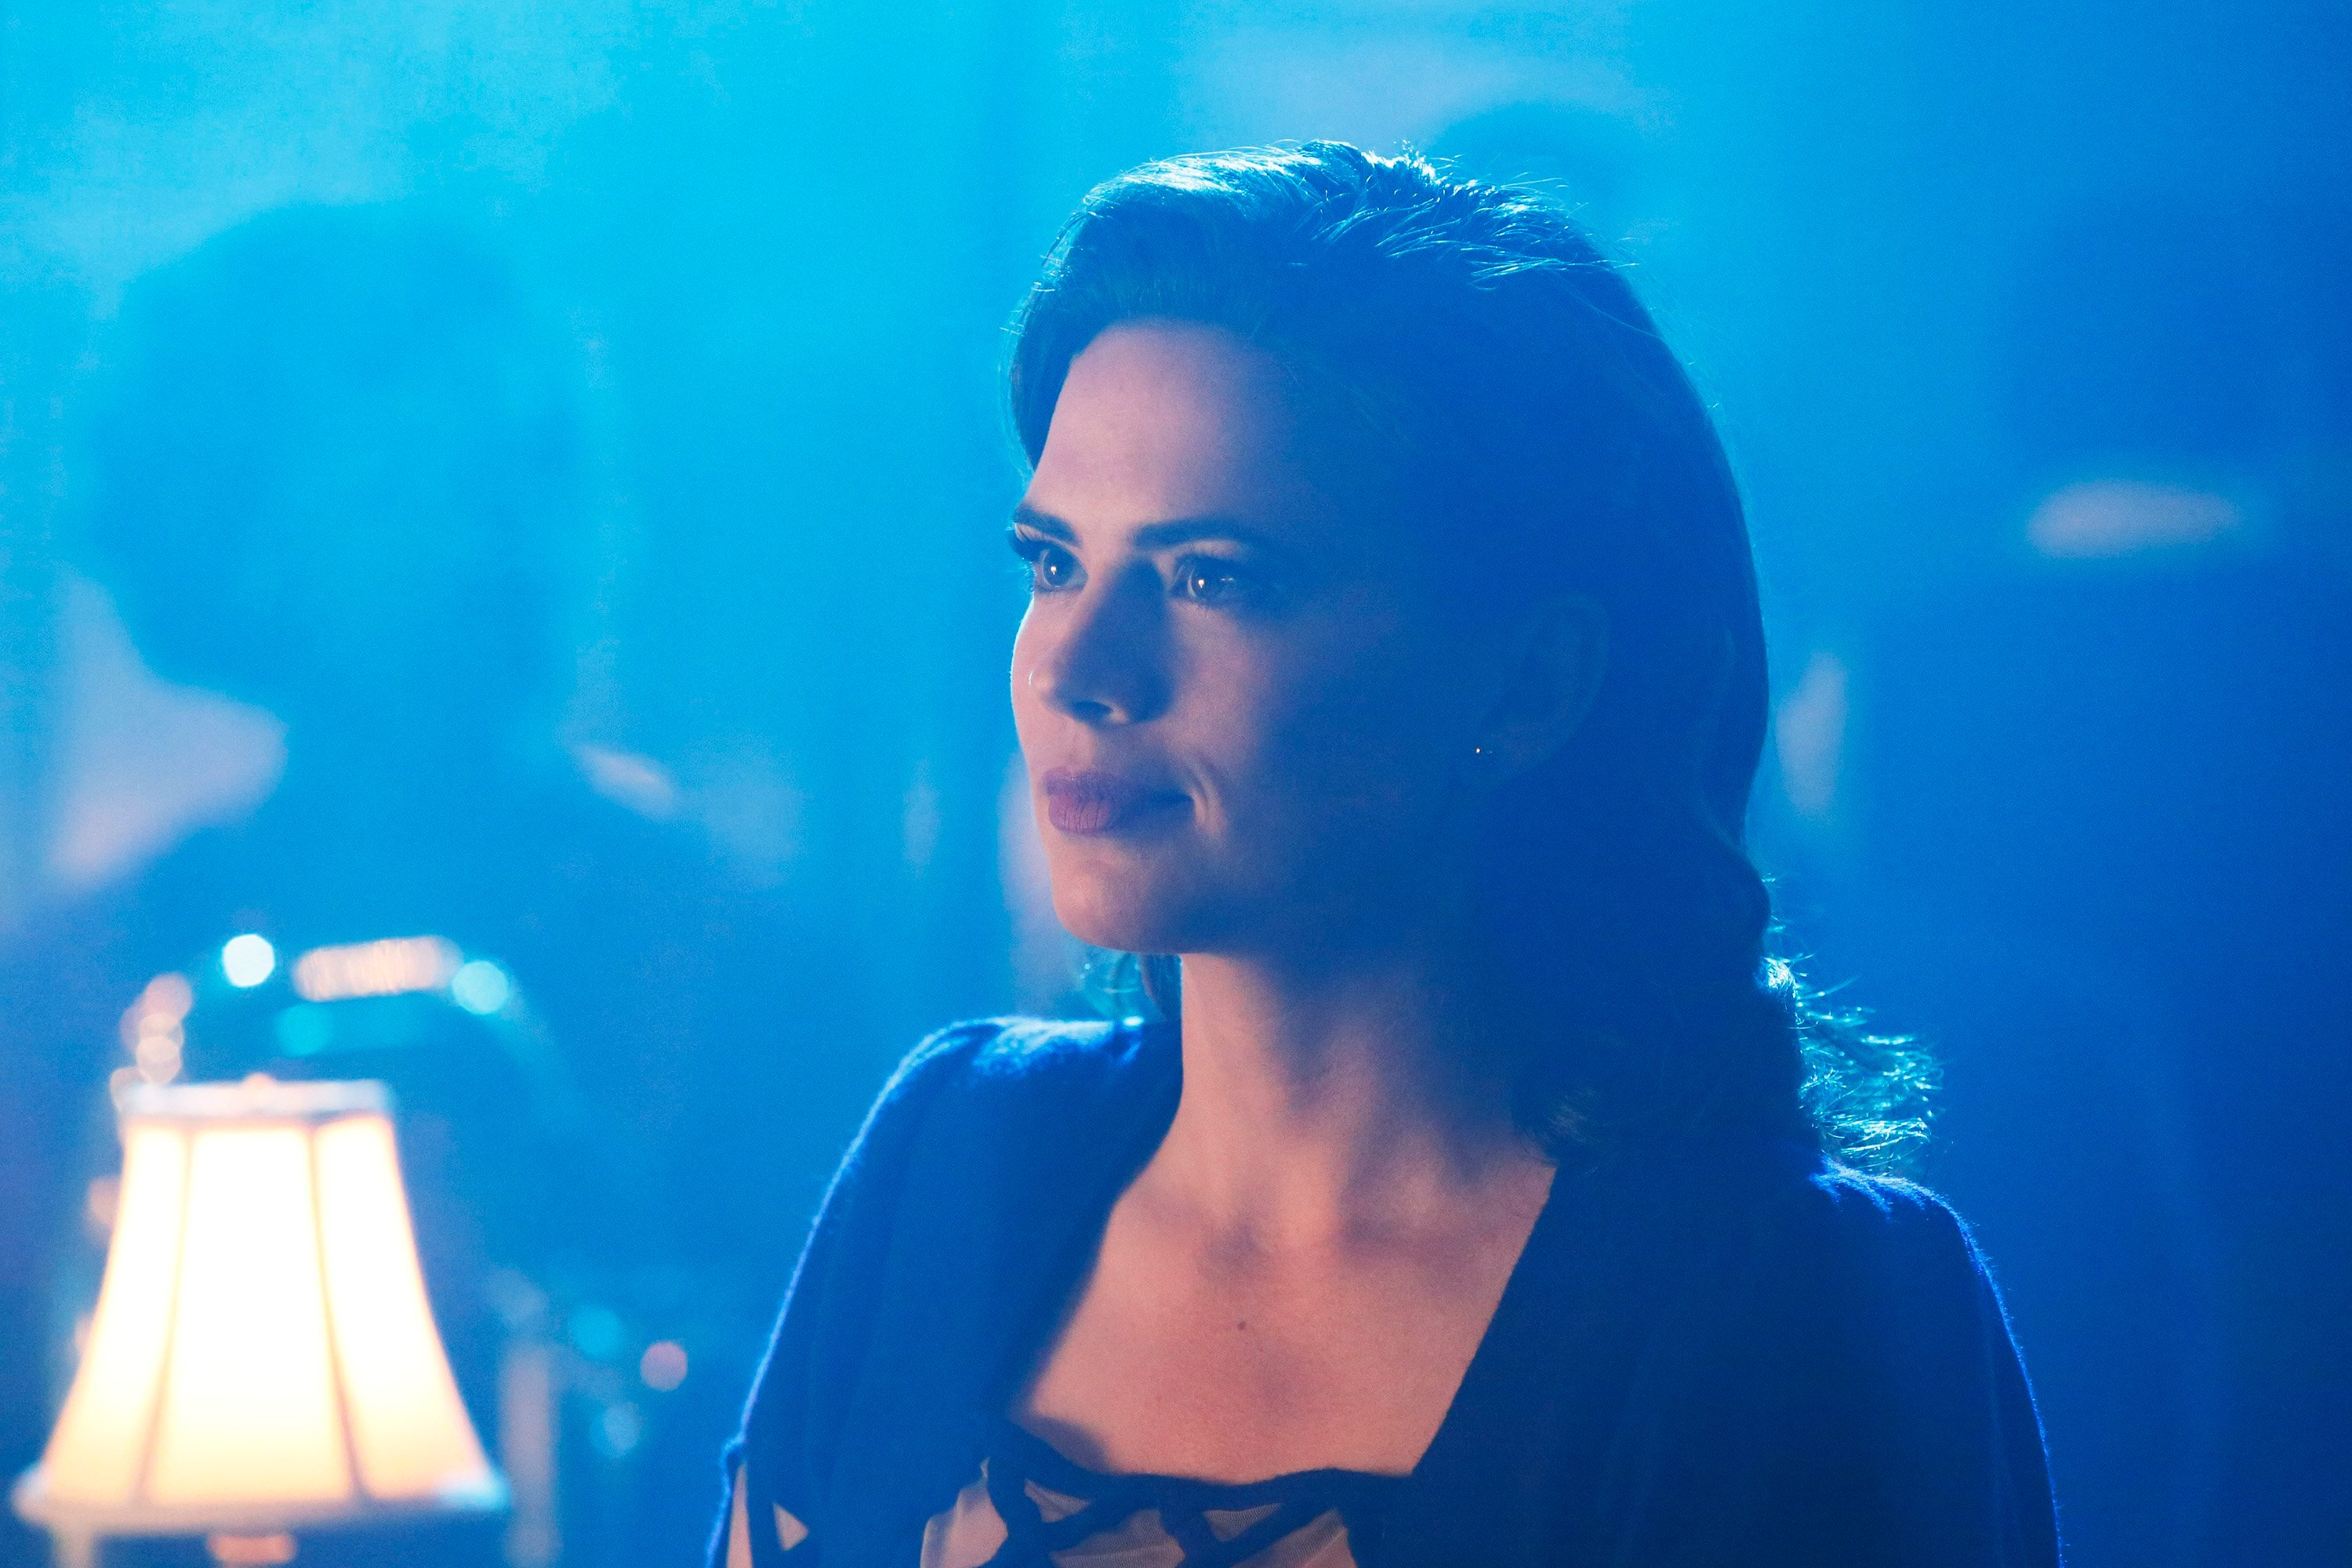 First Look Images From Agent Carter Season 2, Episode 2 Released